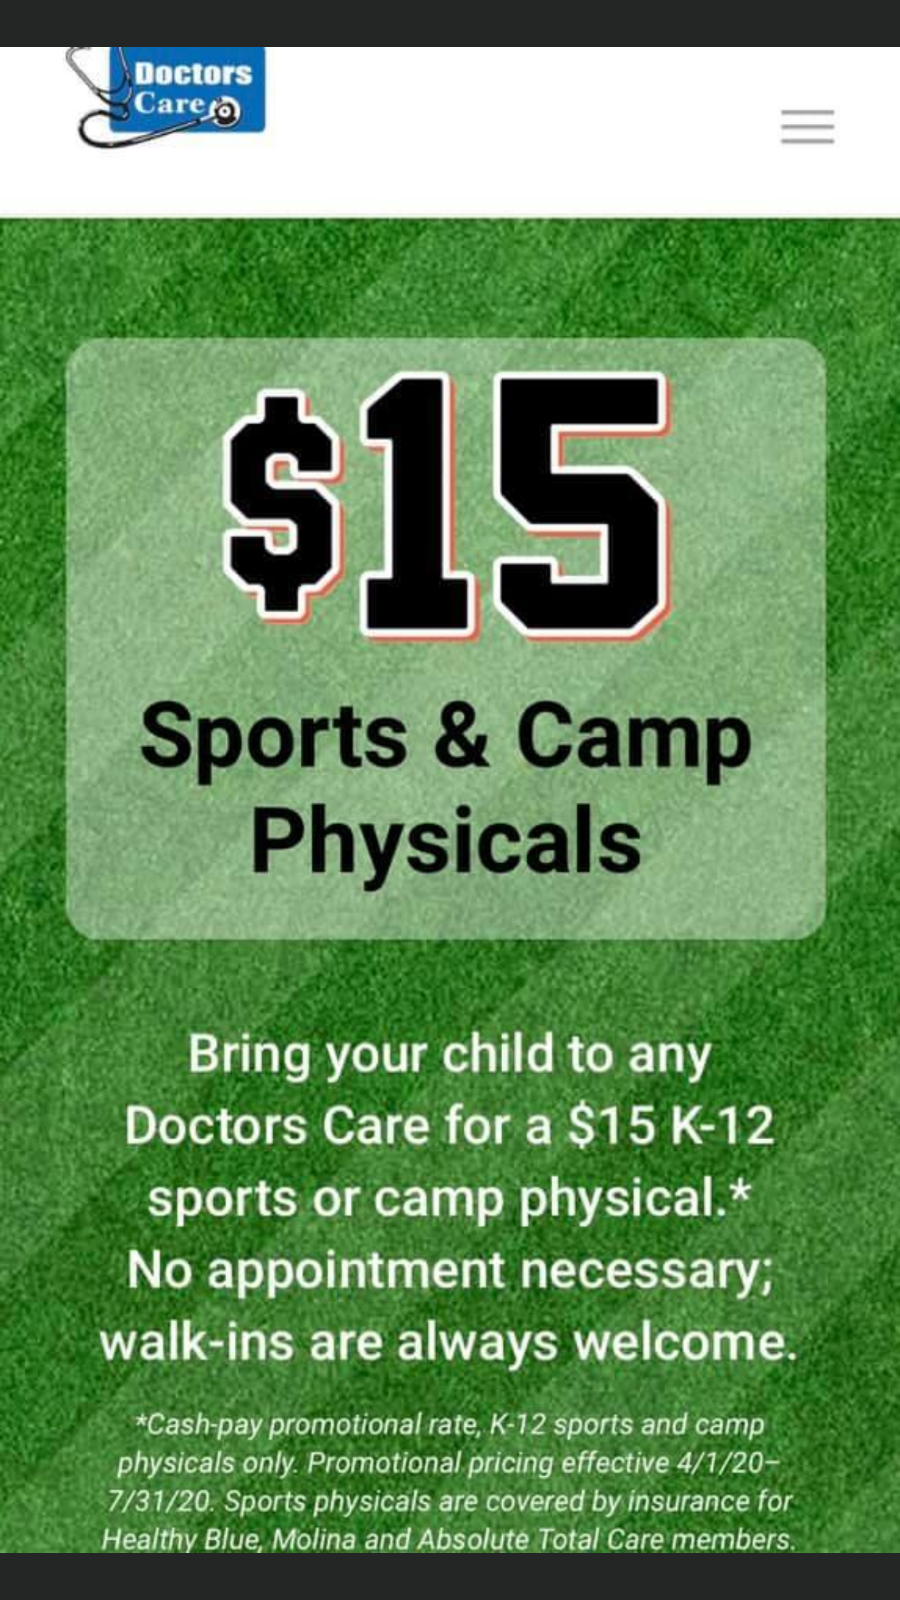 Doctor's Care Offering $15 Sports/Camp Physicals